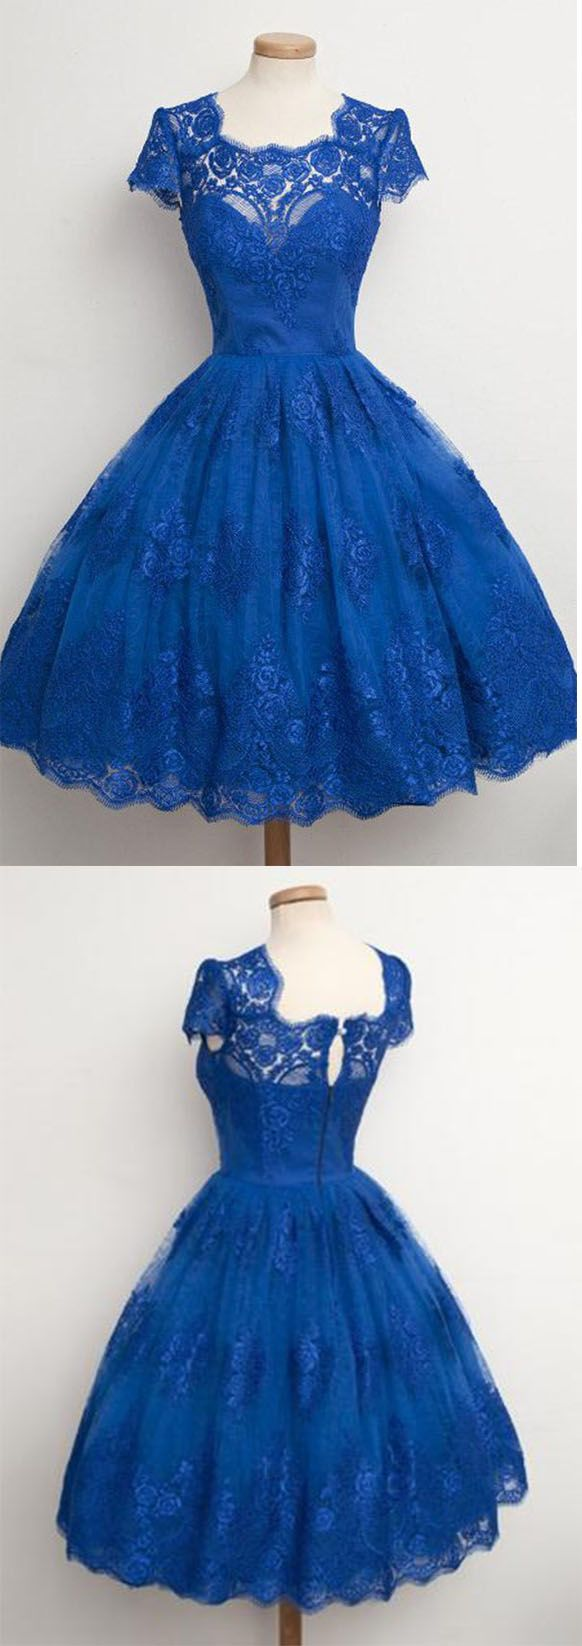 Green dress with lace overlay  Vintage ScallopedEdge Cap Sleeves Lace Blue Short Prom Cocktail